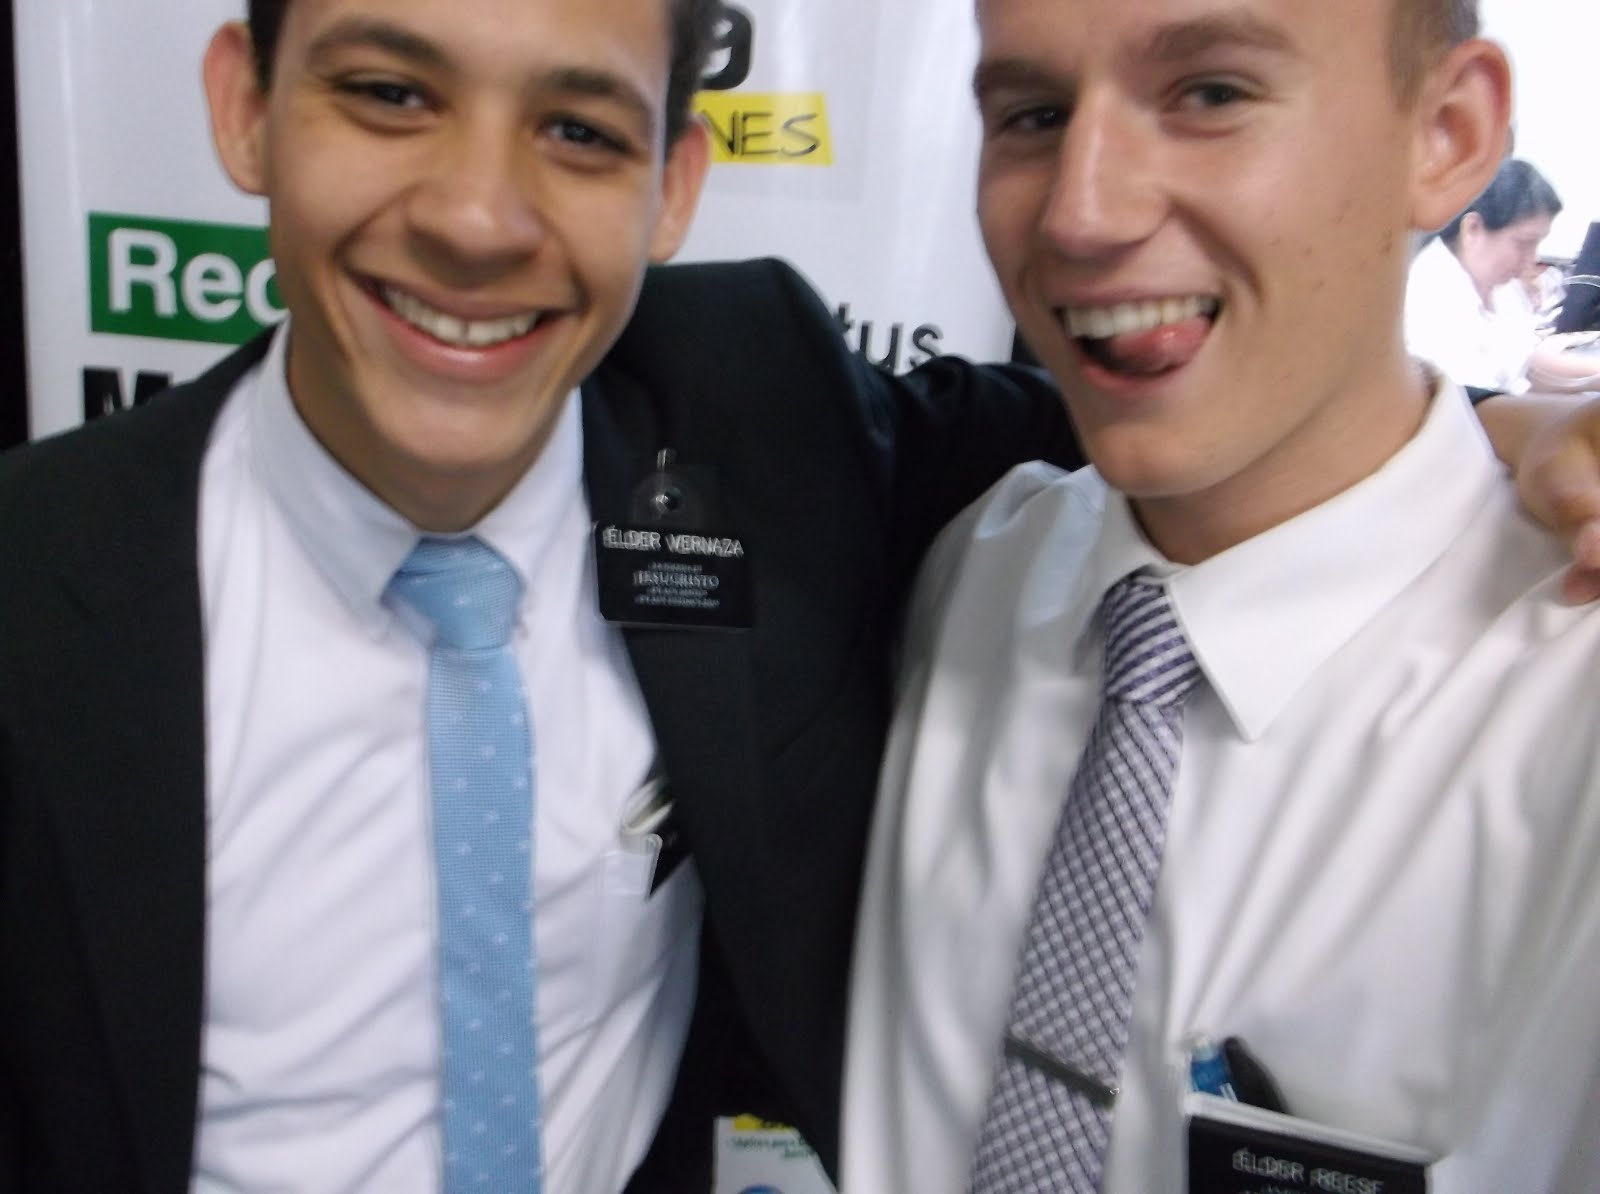 Elder Vernaza transferred